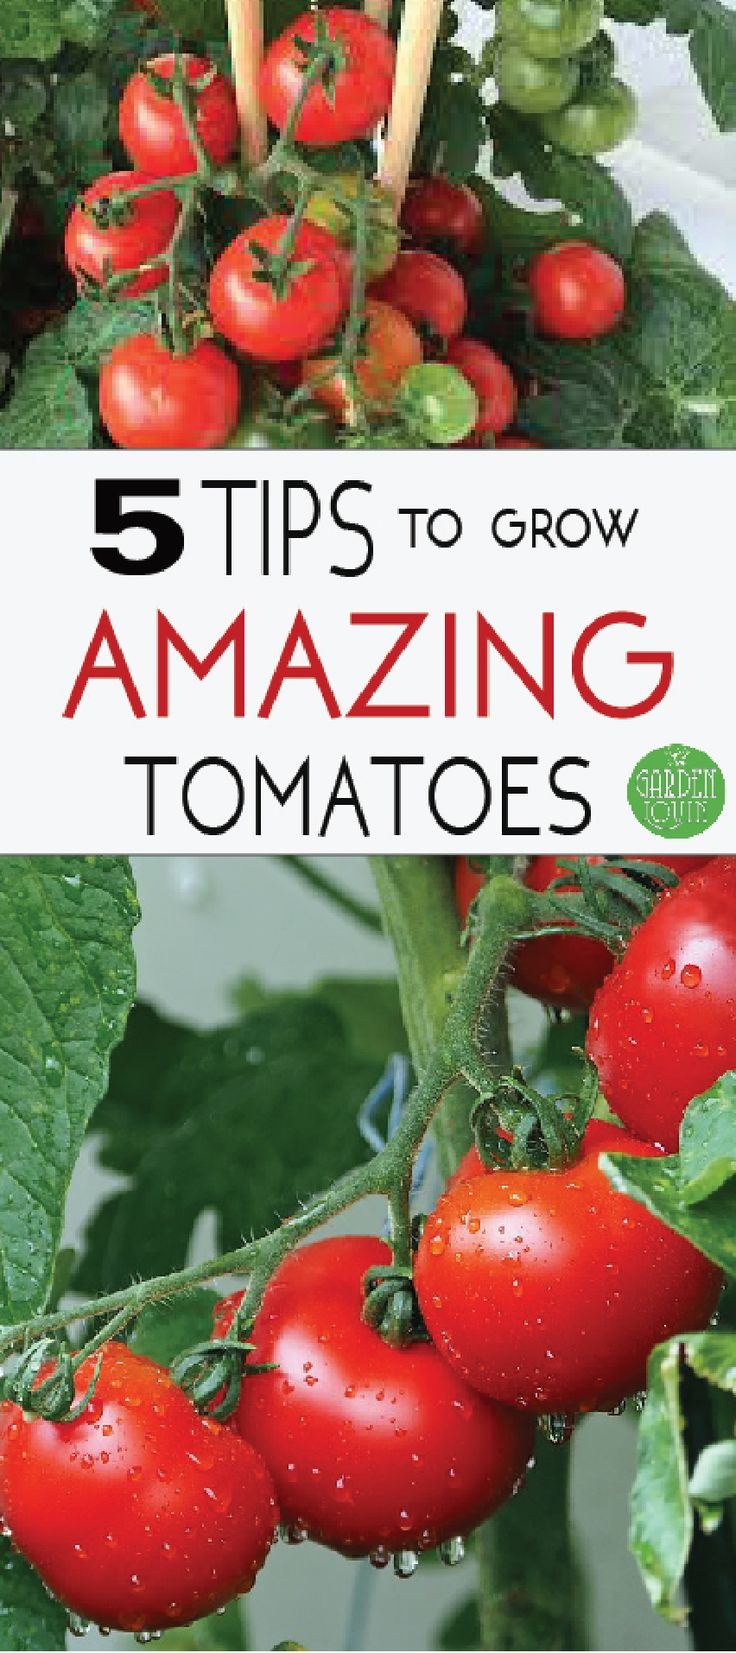 Am I the only one who thinks tomatoes are a side dish? I love to slice tomatoes thick and drizzle them with salad dressing. No lettuce required, tomatoes steal the show all on their own. If you are raising your eyebrows at me right now it's probably because you haven't had a truly